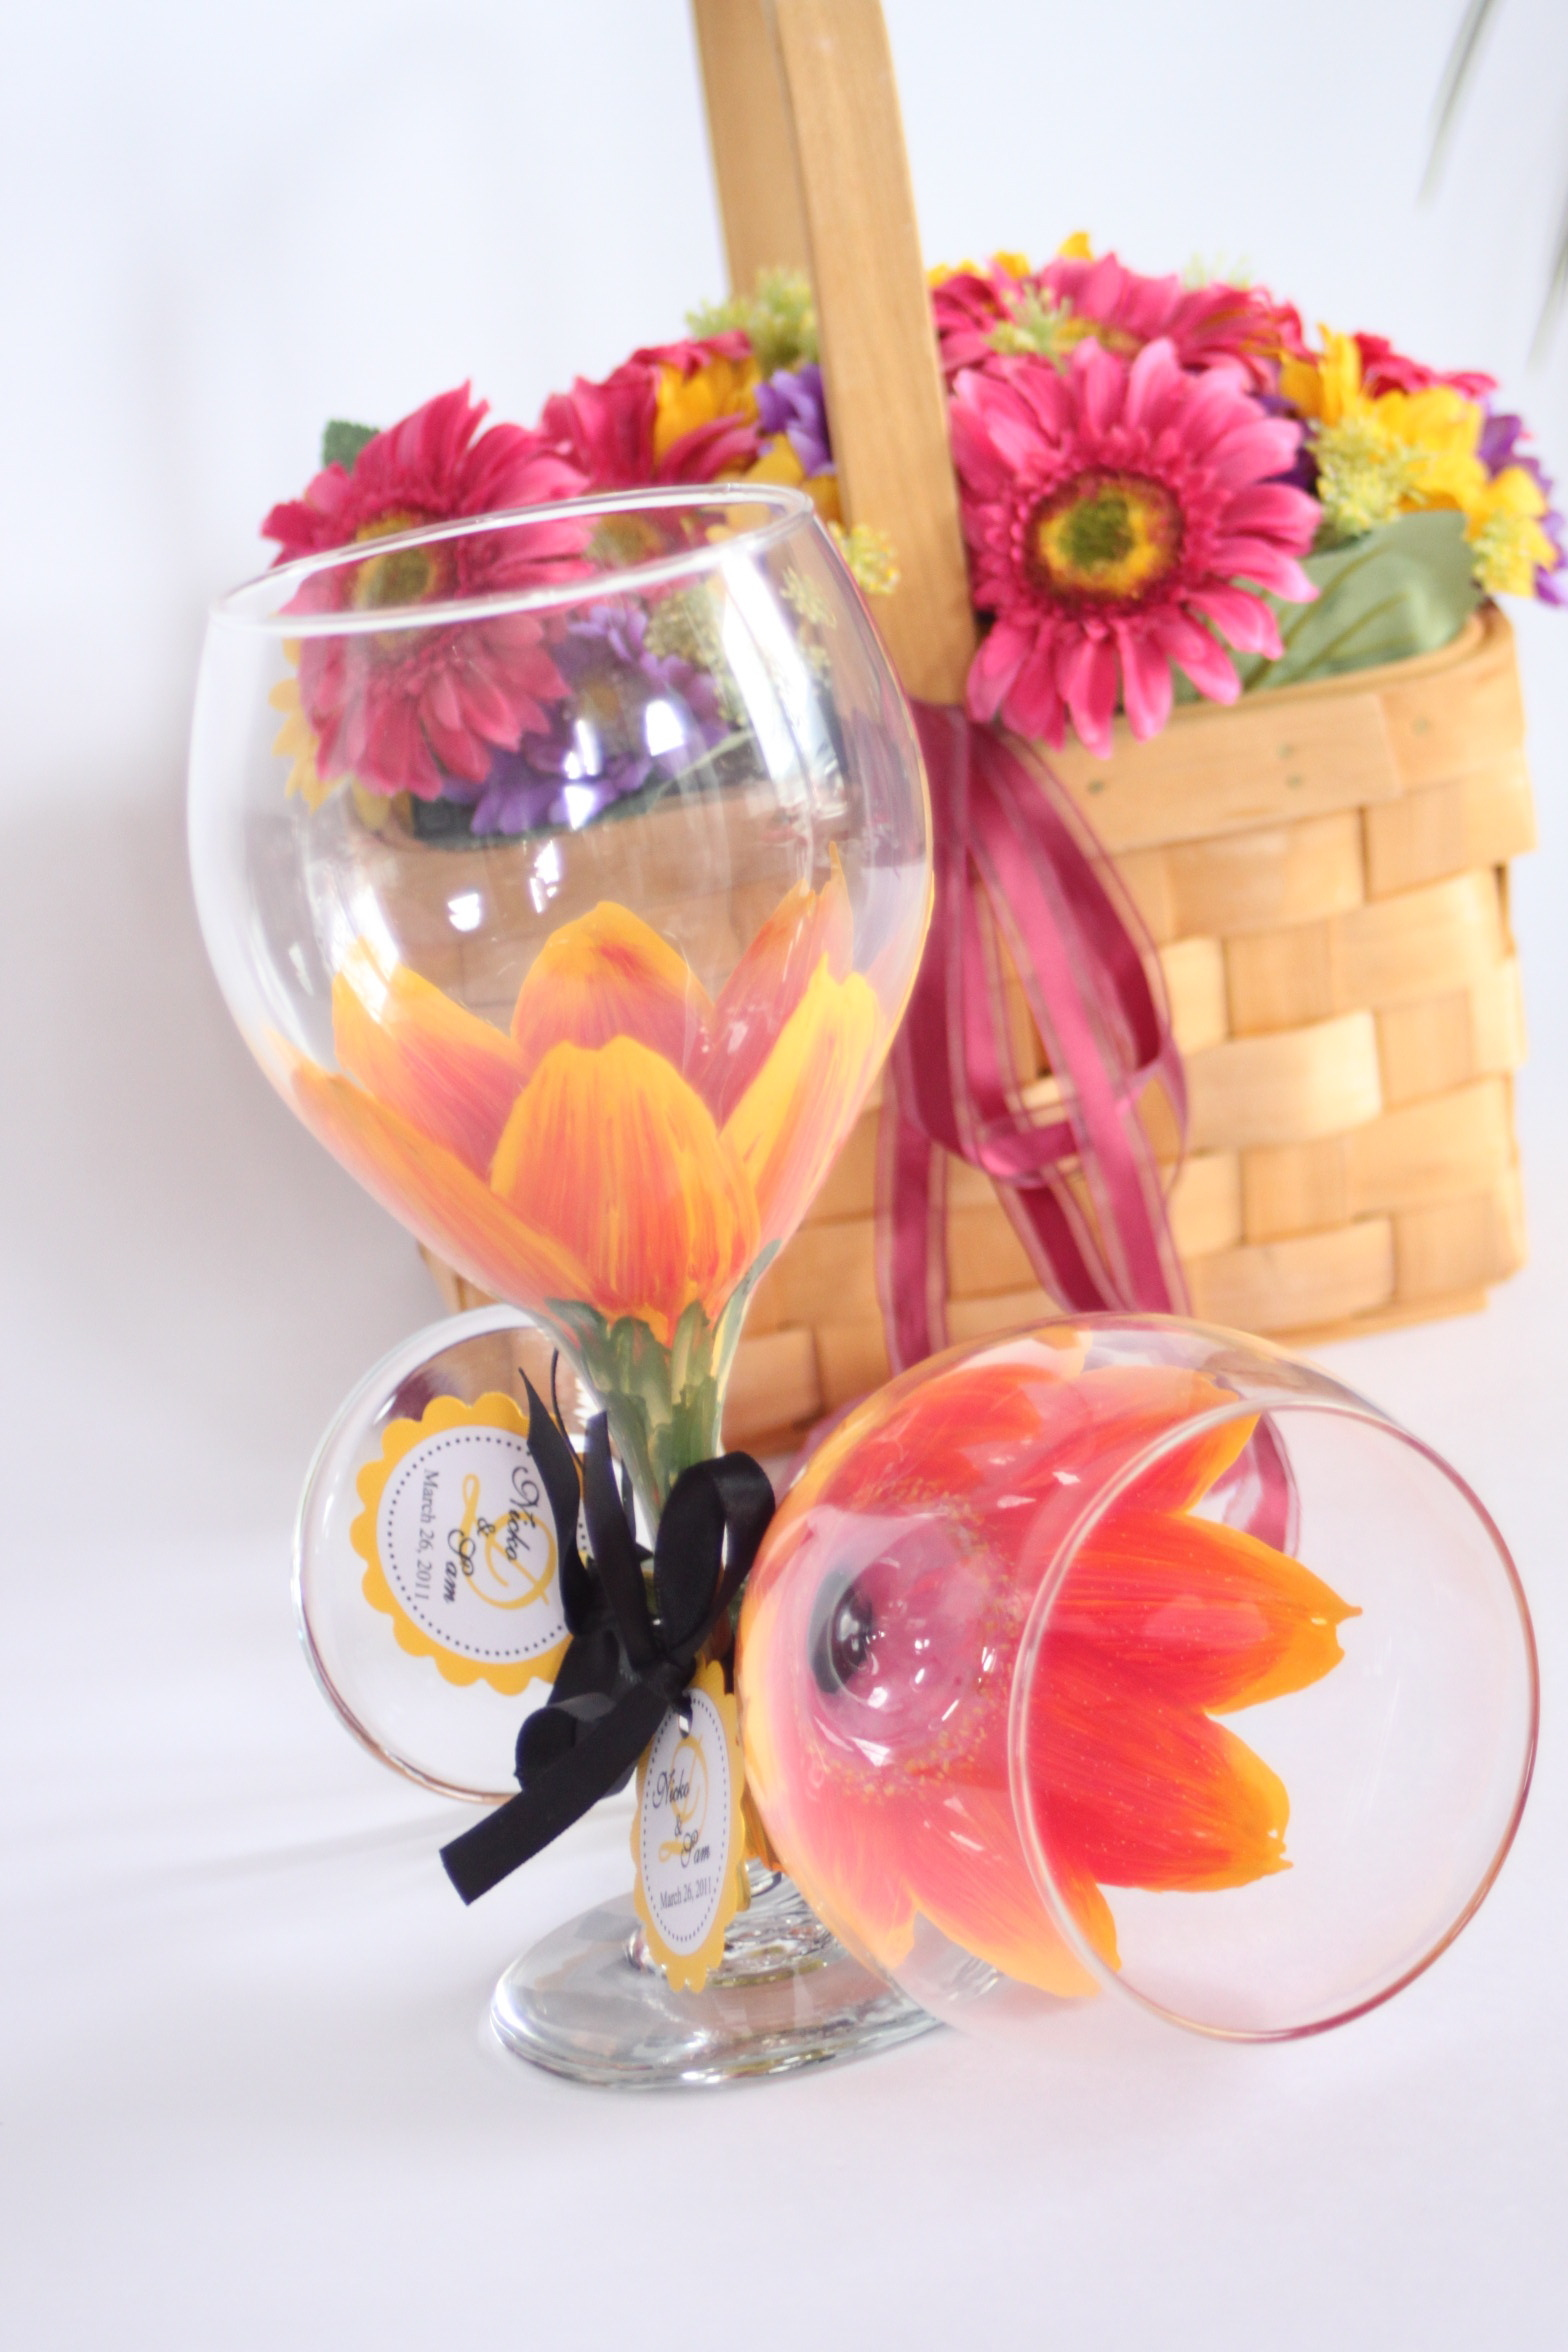 Reception, Flowers & Decor, Favors & Gifts, Bridesmaids, Bridesmaids Dresses, Fashion, orange, pink, gold, Favors, Flower, Unique, Inspiration board, Painted, Stemware, Functional